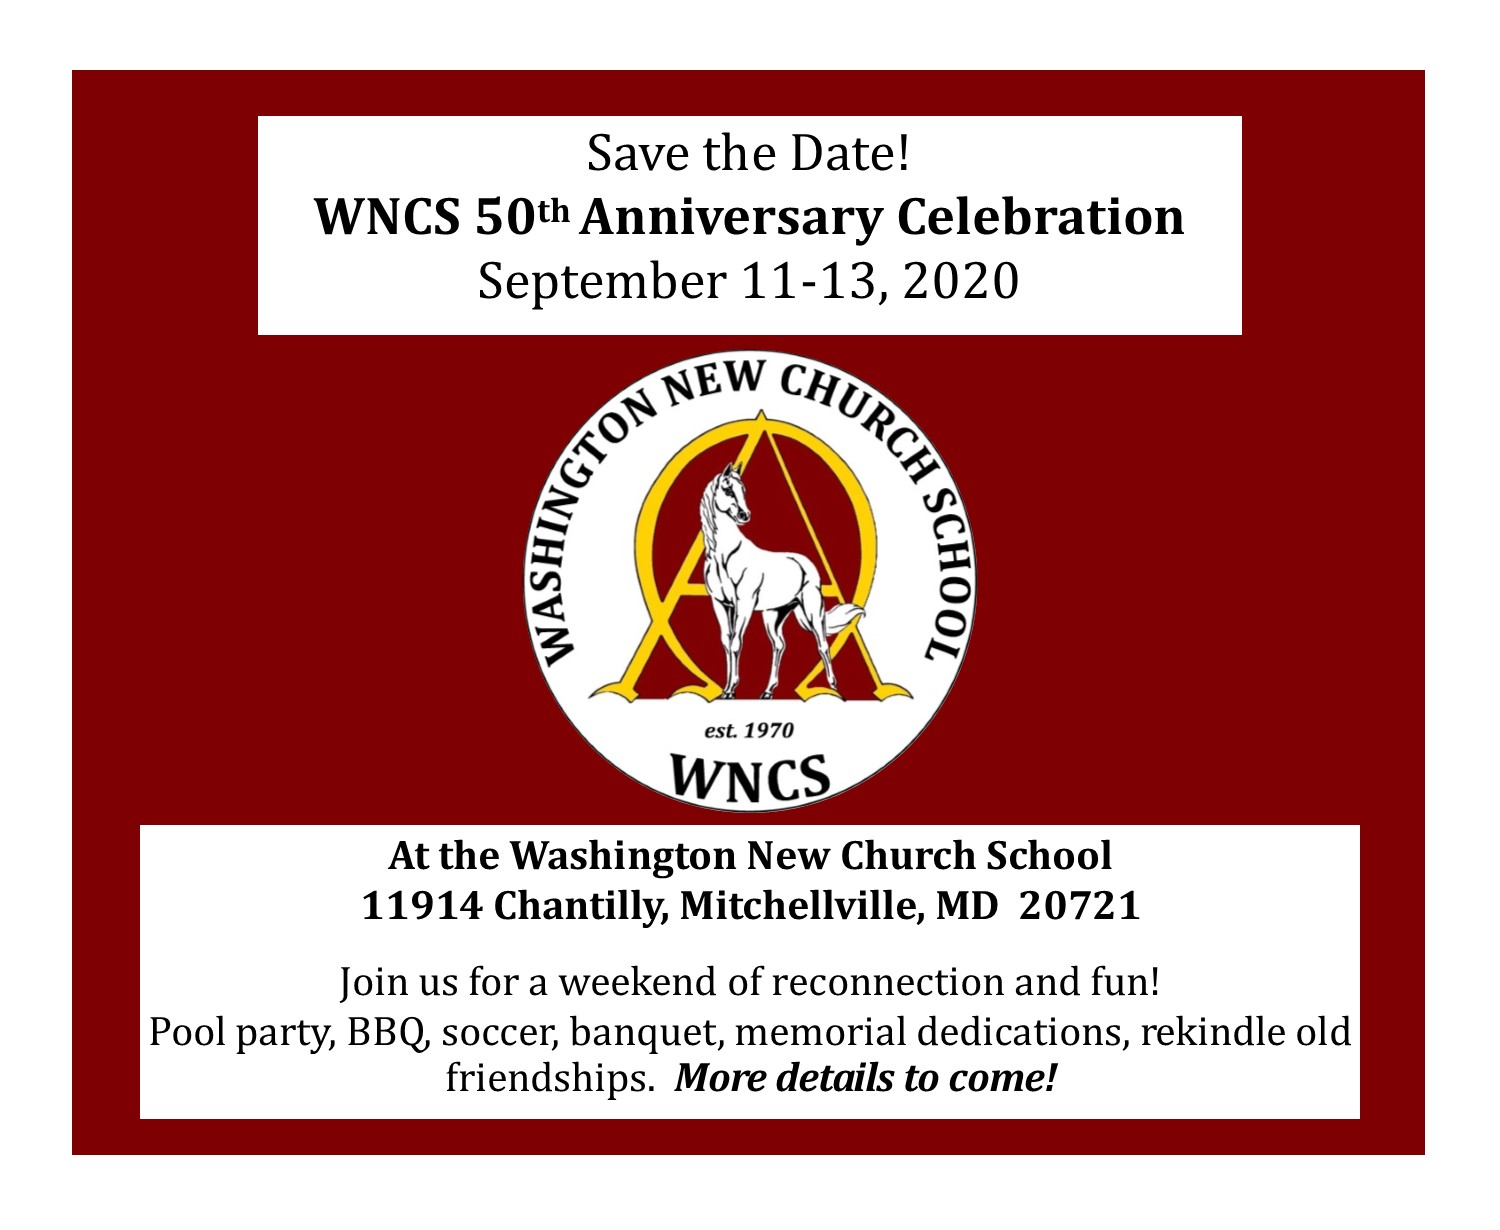 WNCS 50th Save the Date